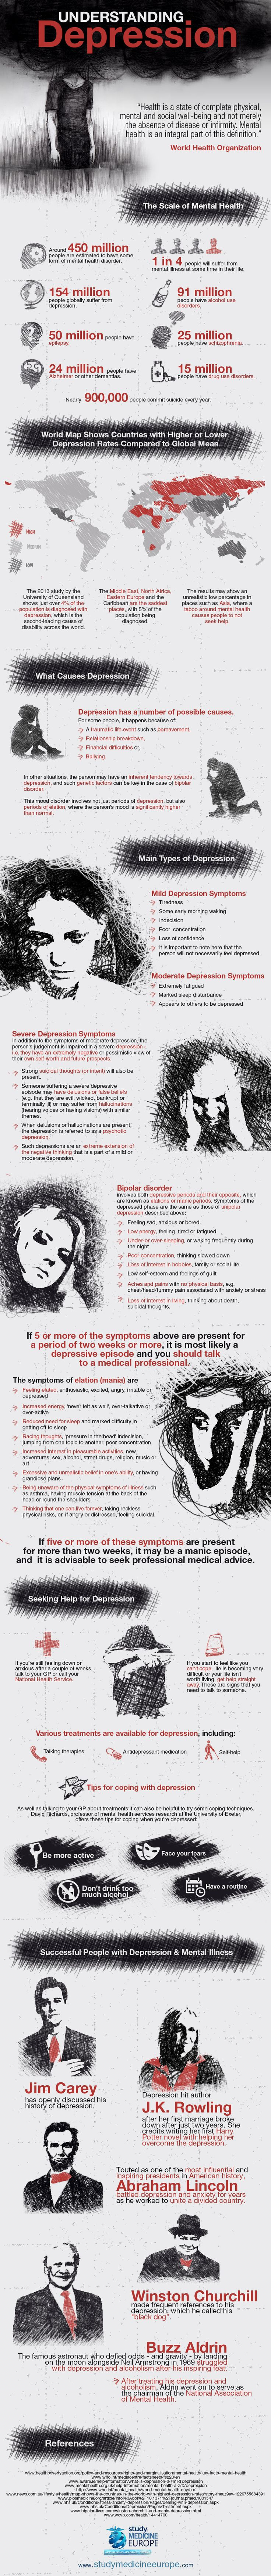 An Infographic to Help You Understand Depression - Whether induced by outside factors or an inherent tendency towards depression or bipolar disorder, seek help if symptoms are present for two or more weeks. (View only)